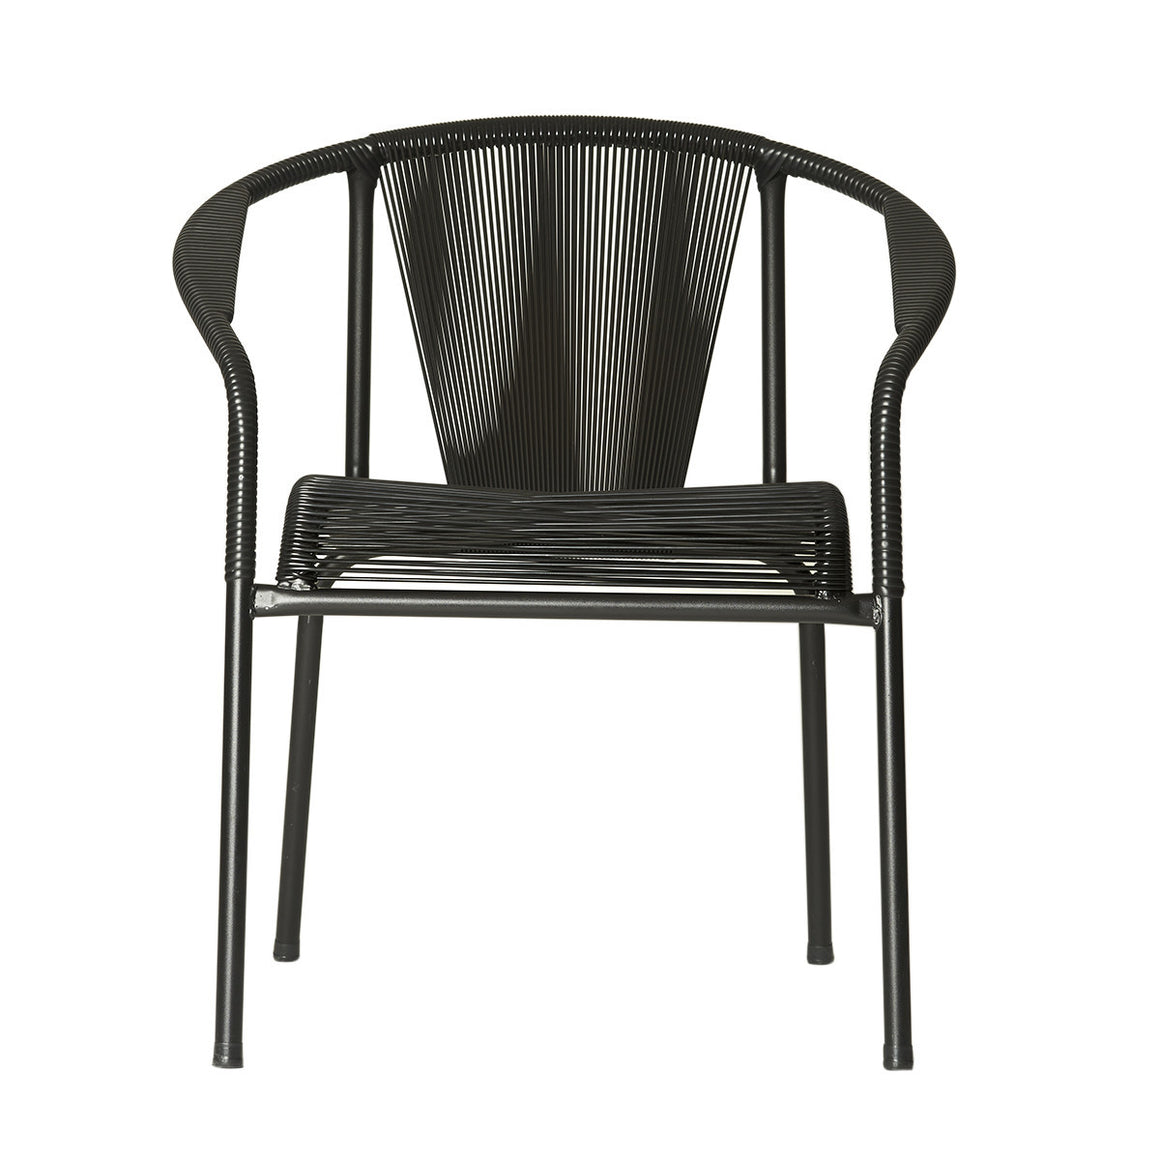 Shell Chair Dining (Black 01)